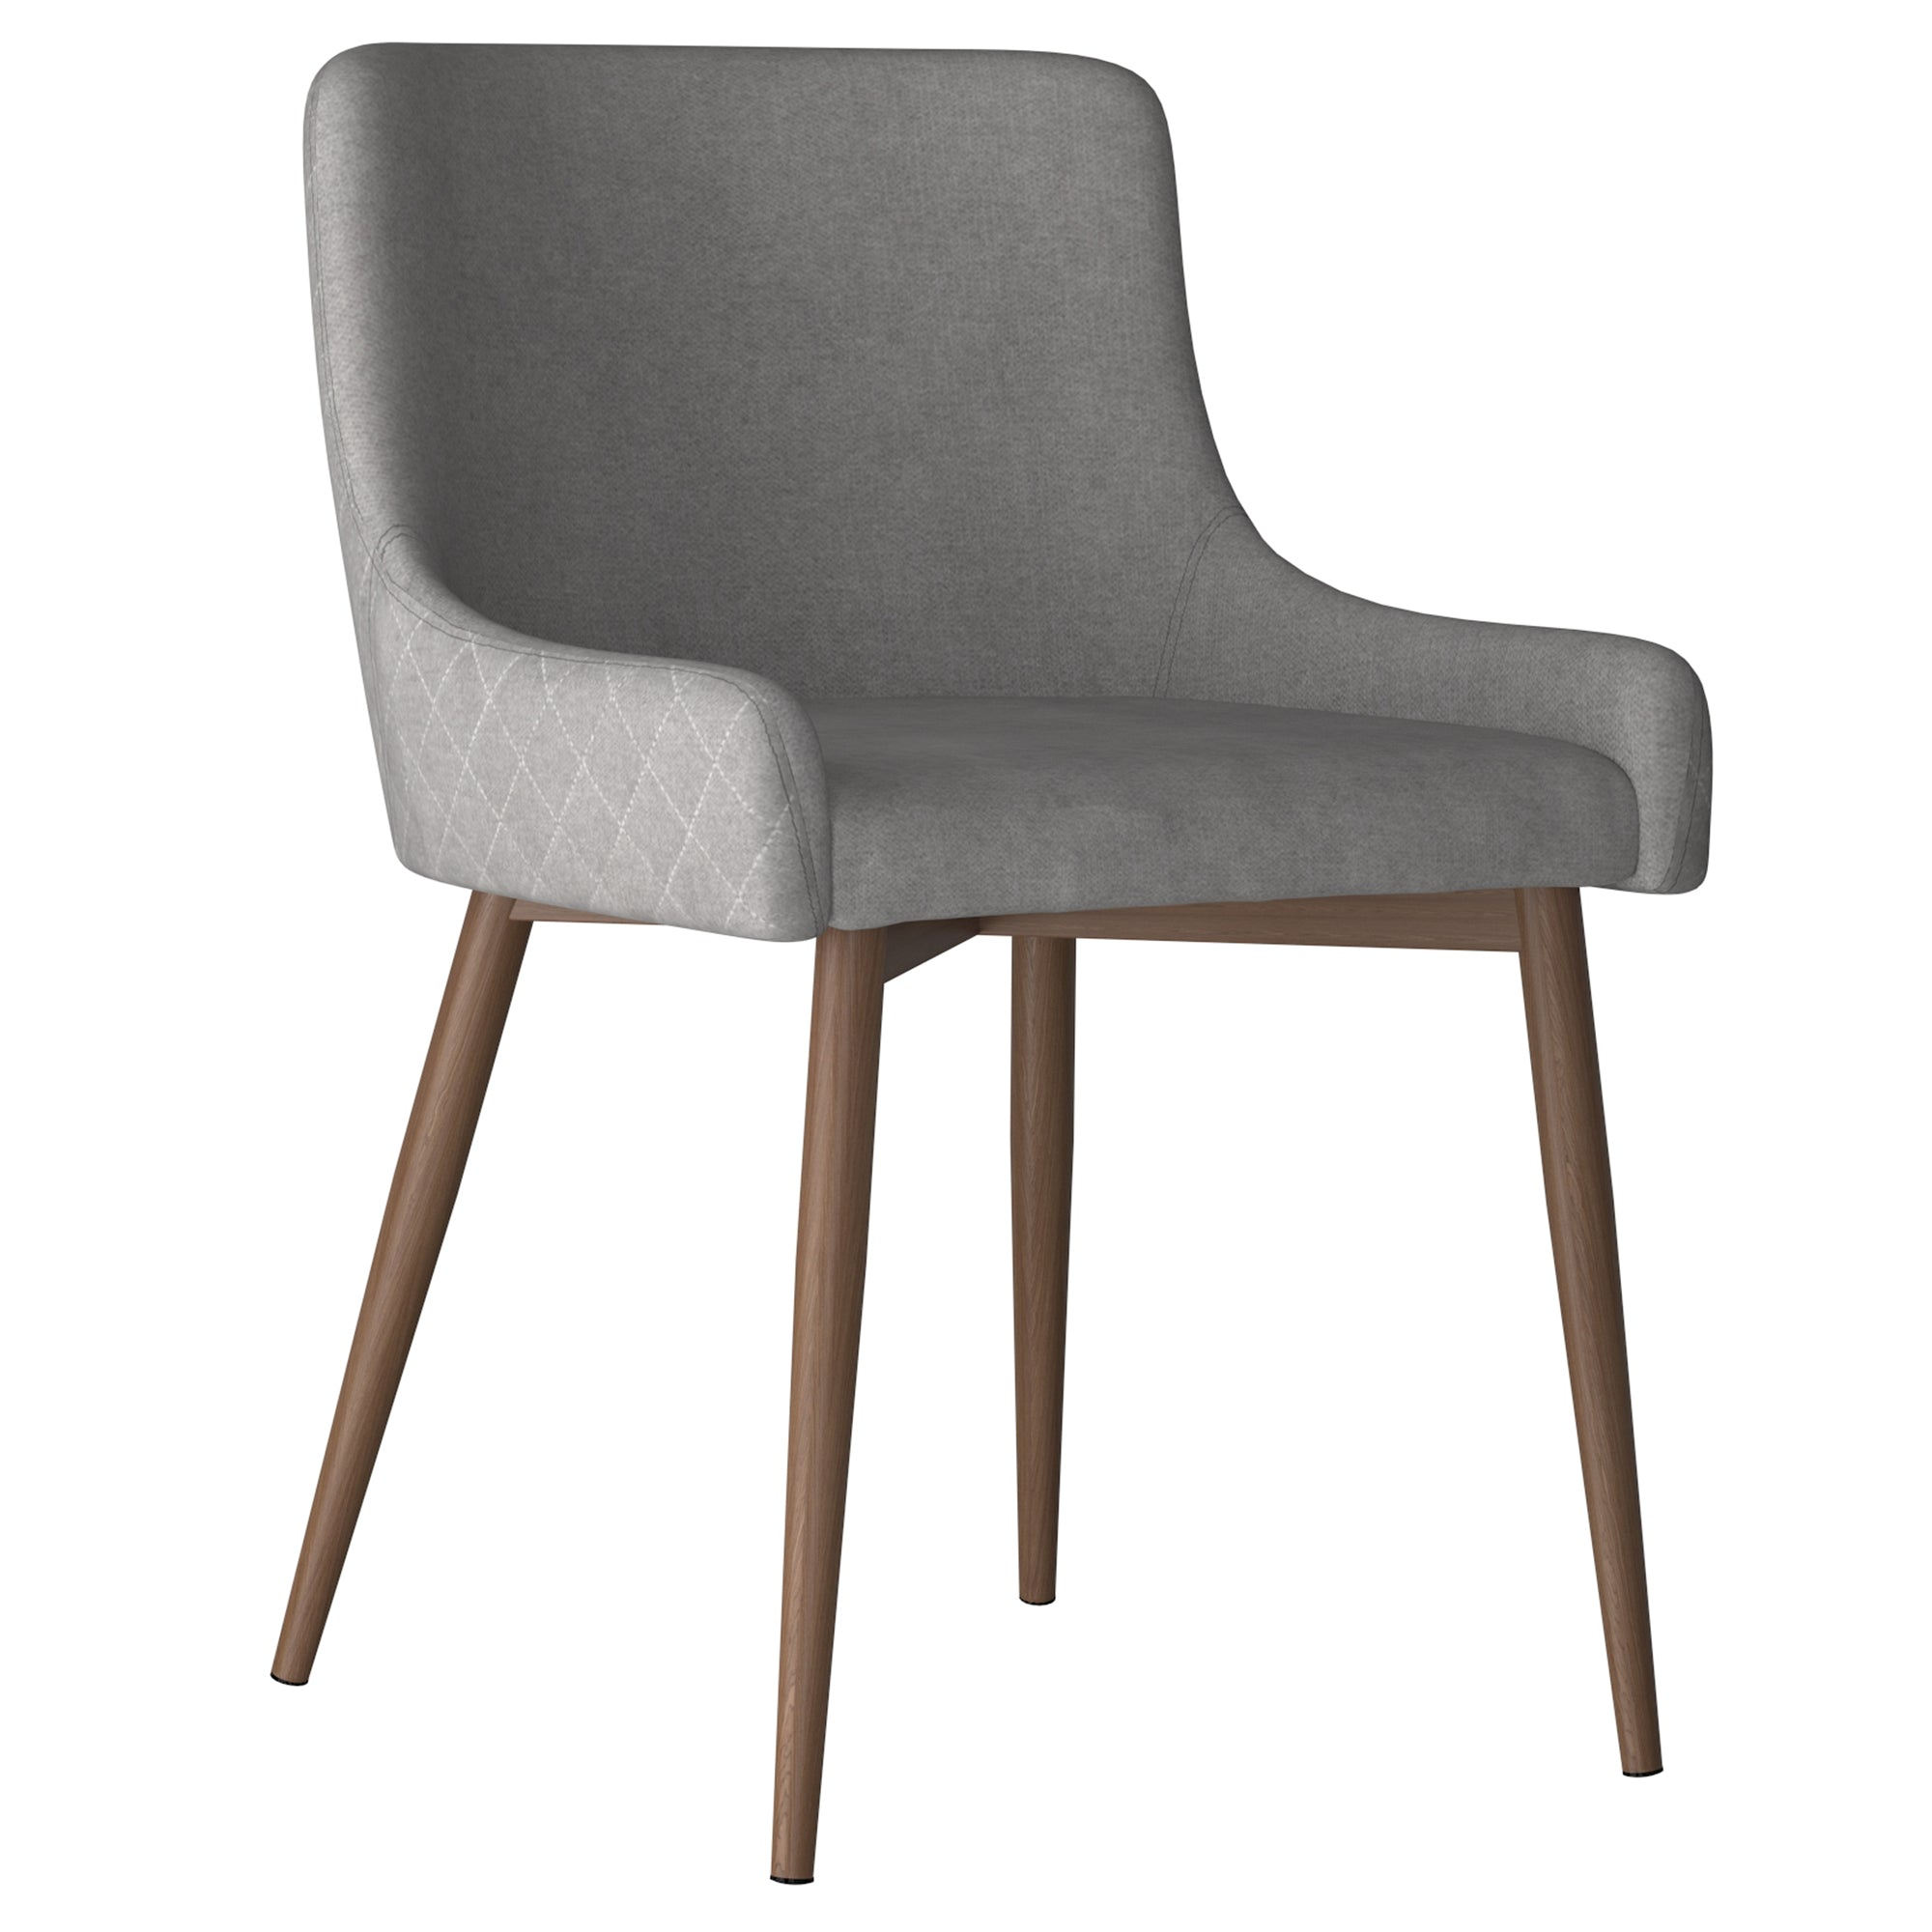 Bianca Side Chair - Grey with Walnut Legs